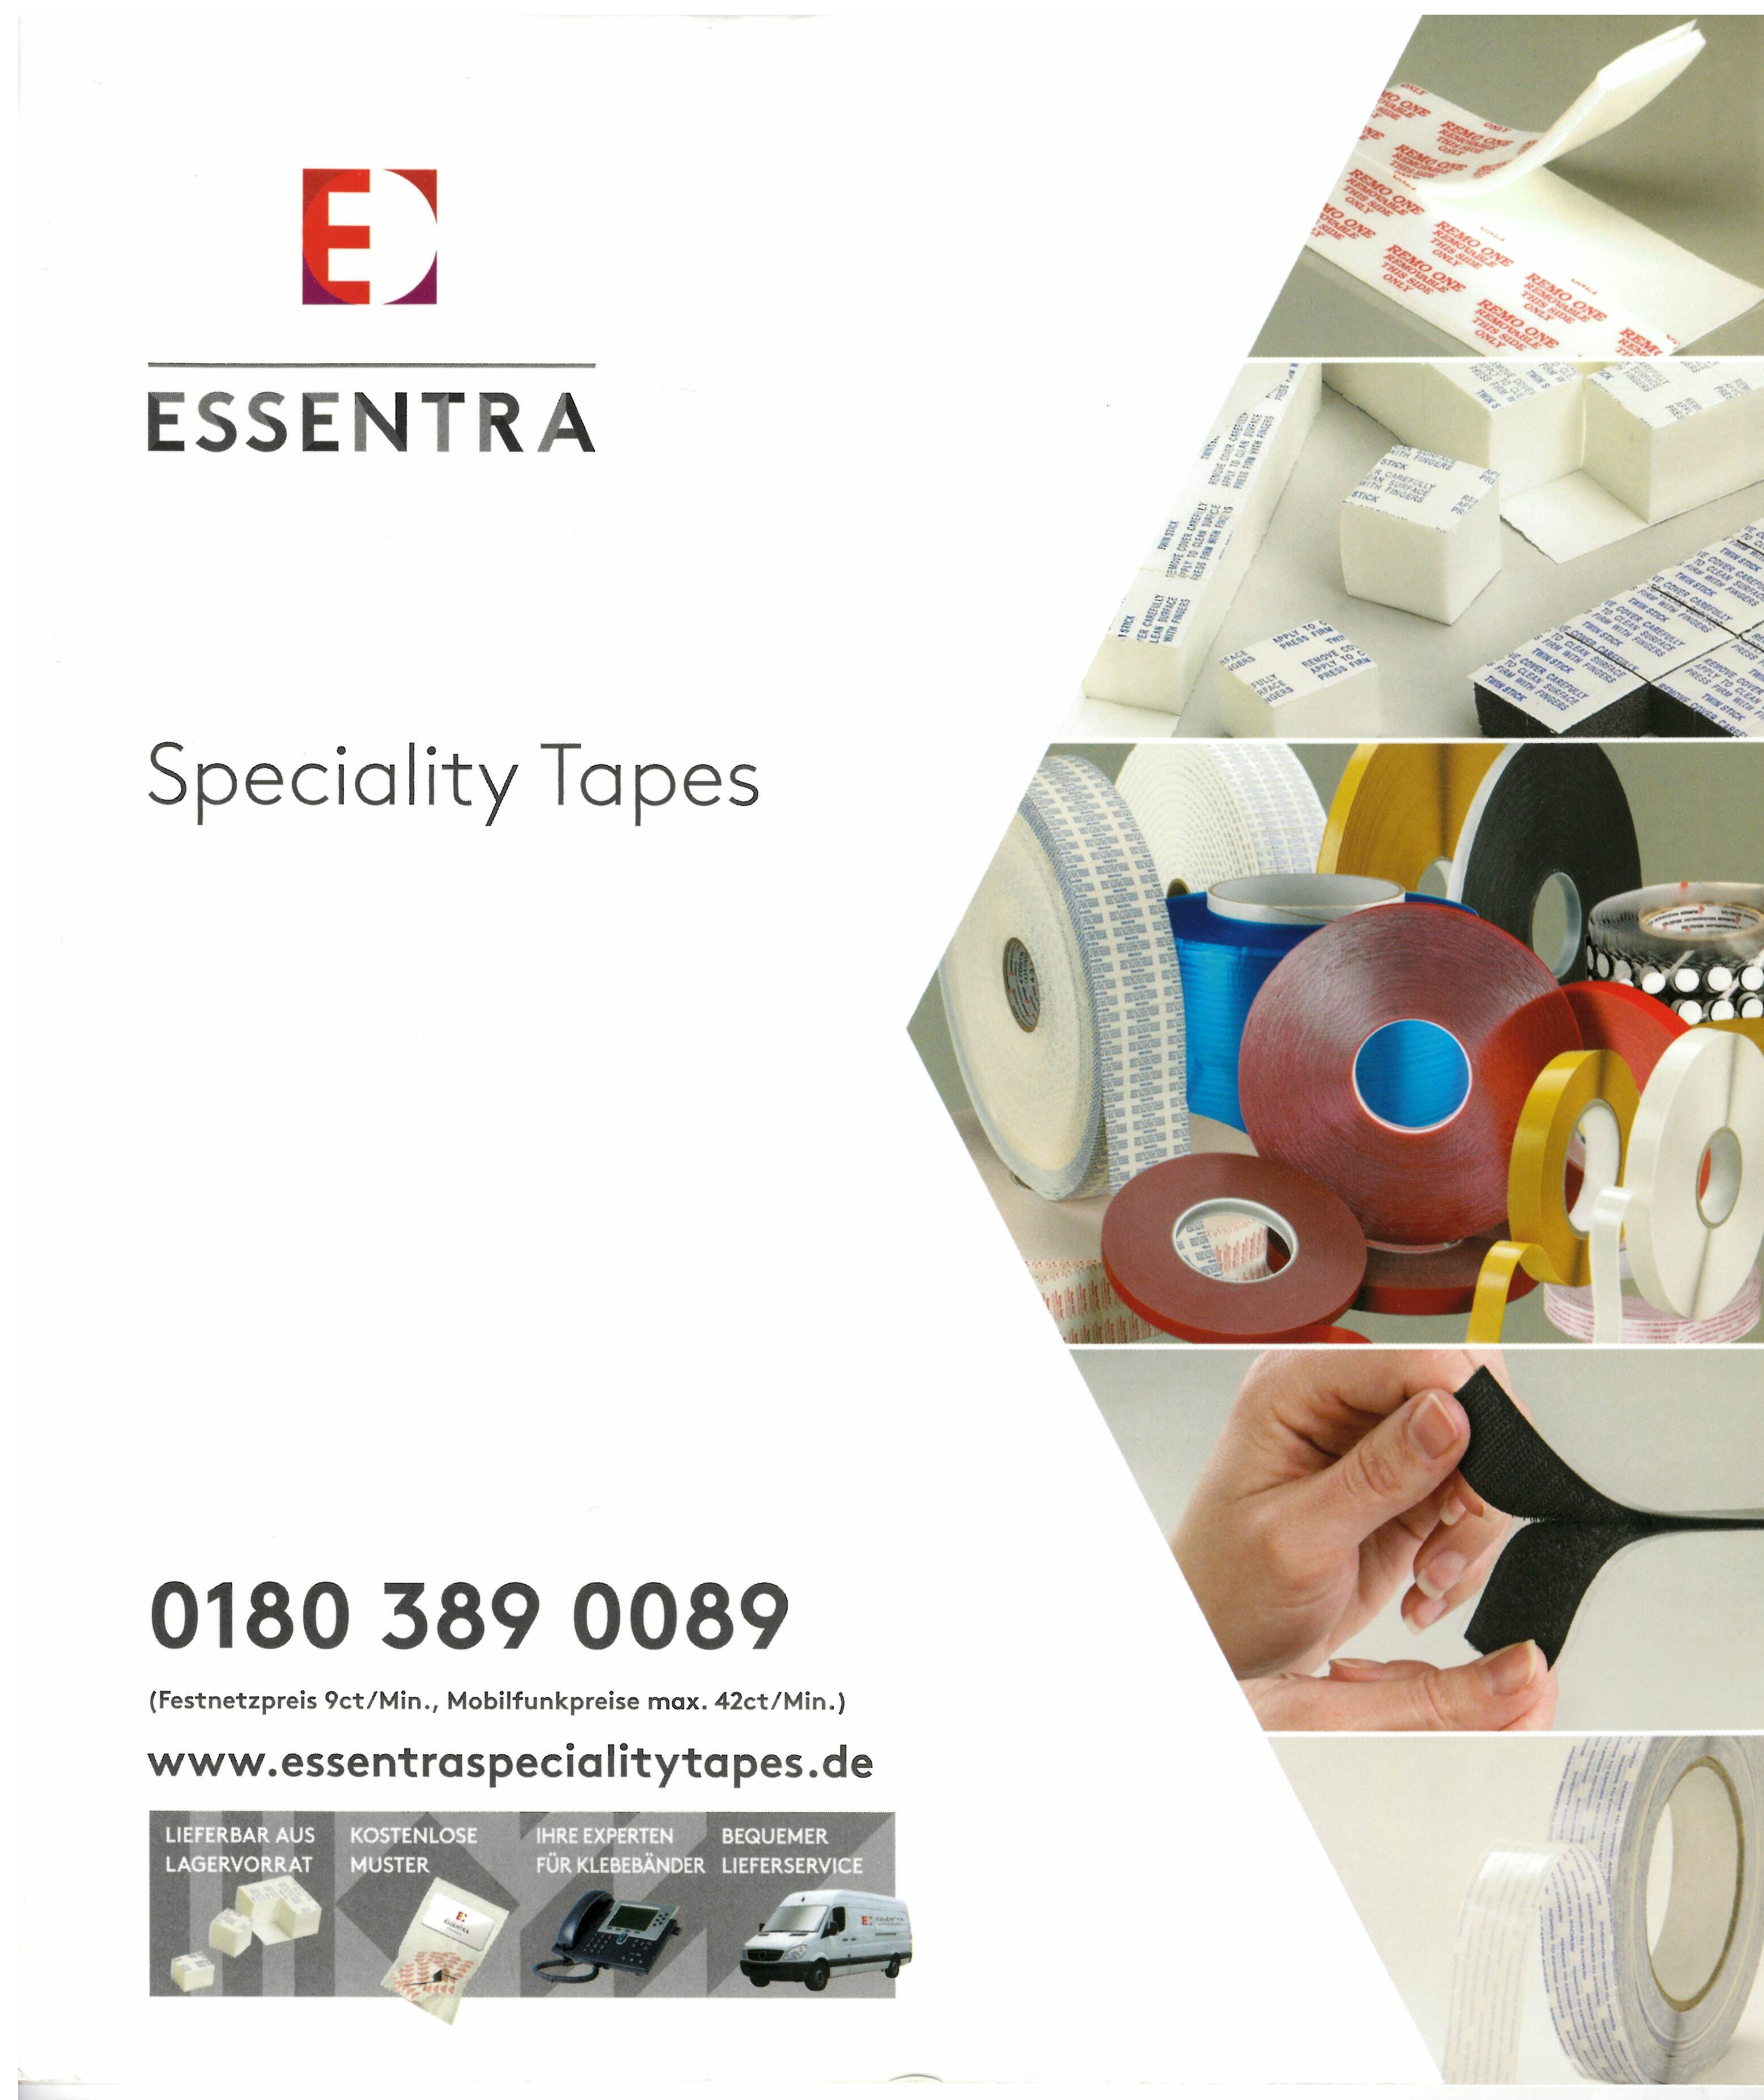 Essentra Speciality Tapes